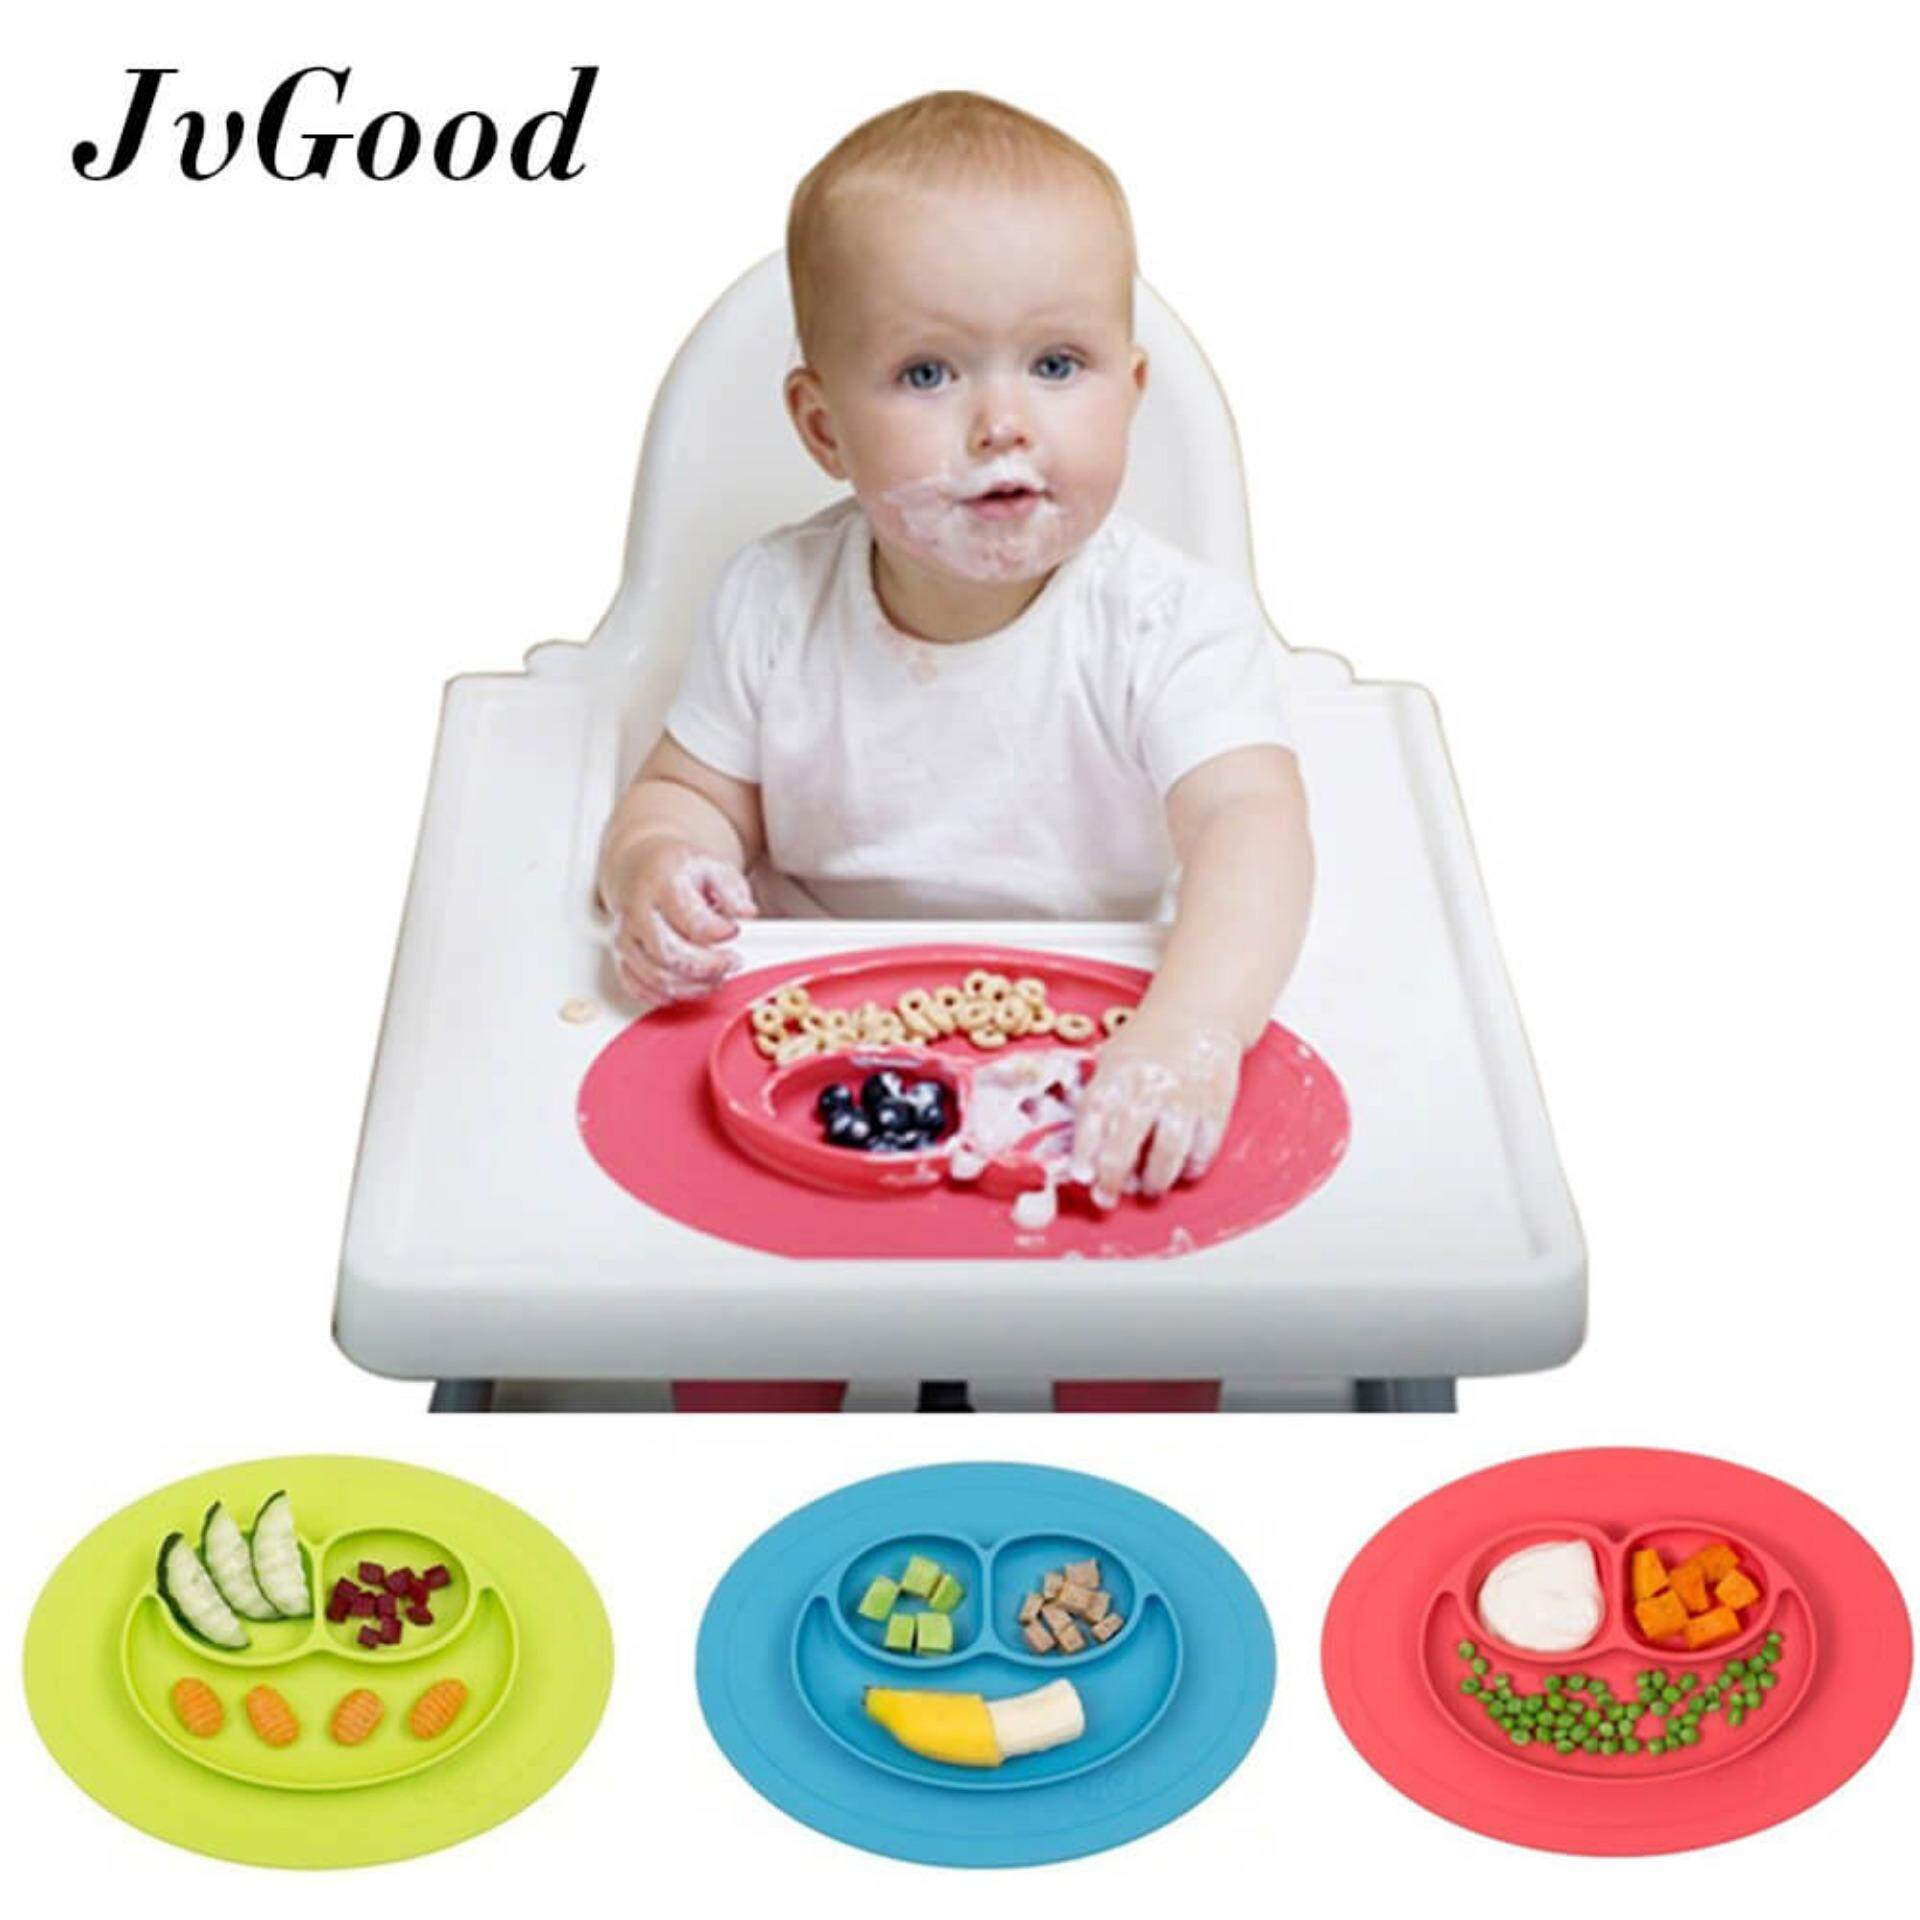 [promotion!] Jvgood Baby Silicone Placemat Plate Tray For Infants Toddlers And Kids Food Mats One Piece Happy Mat Suction Fits To Most Tables Highchair Non Slip Baby Feeding Fda Approved, Red - Intl By Jvgood.